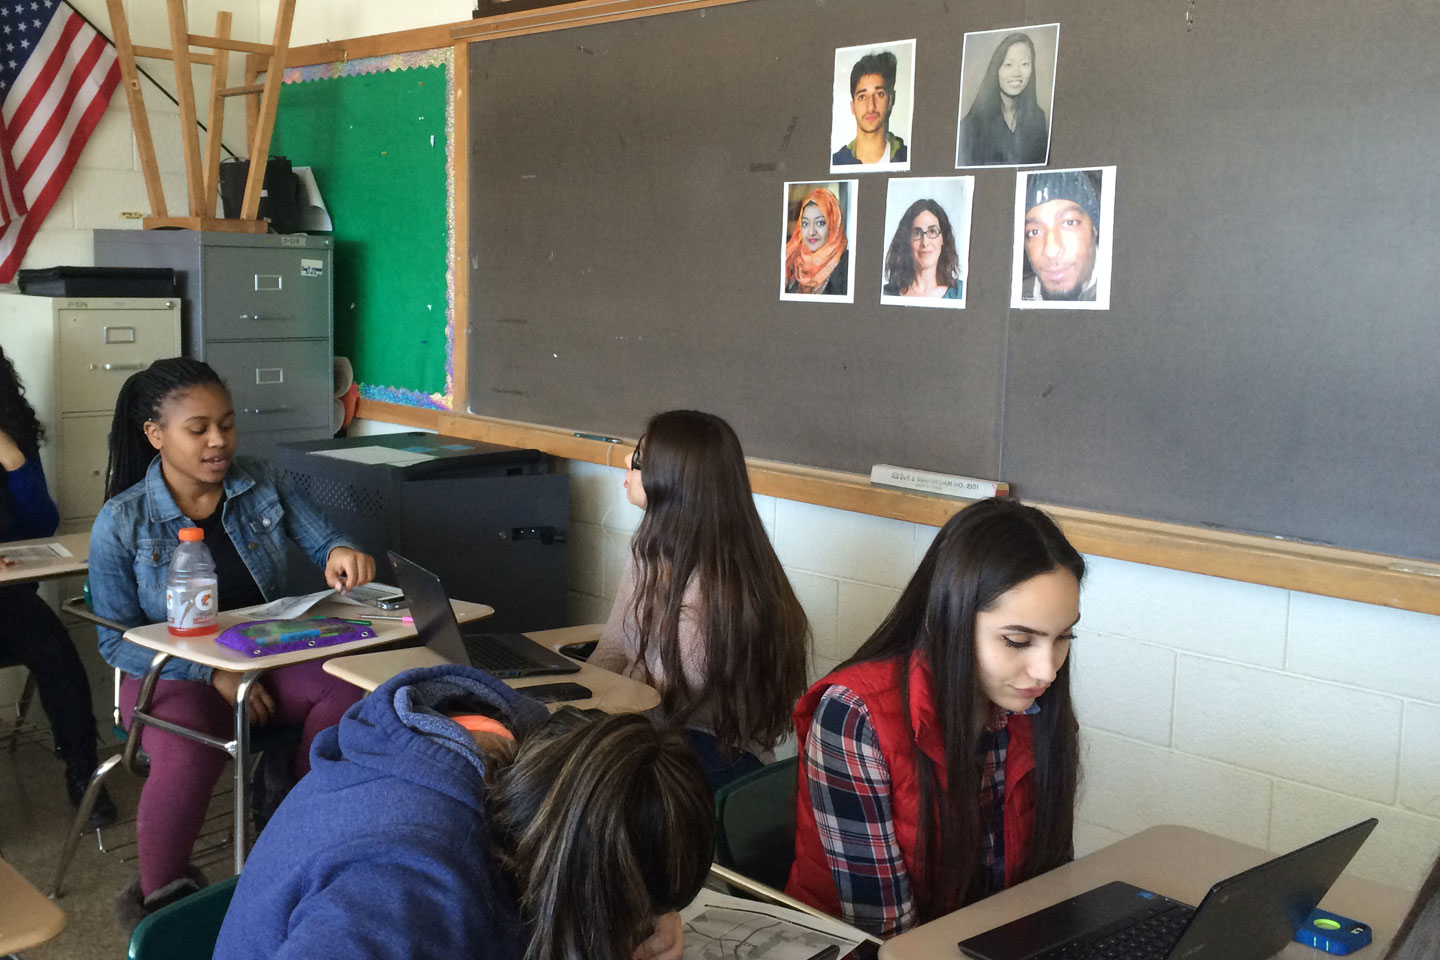 Students at Norwalk High School discuss the Serial podcast, while images of key players loom on the wall, including Adnan Syed and Sarah Koenig. Credit: Credit: Sabrina Hiller.